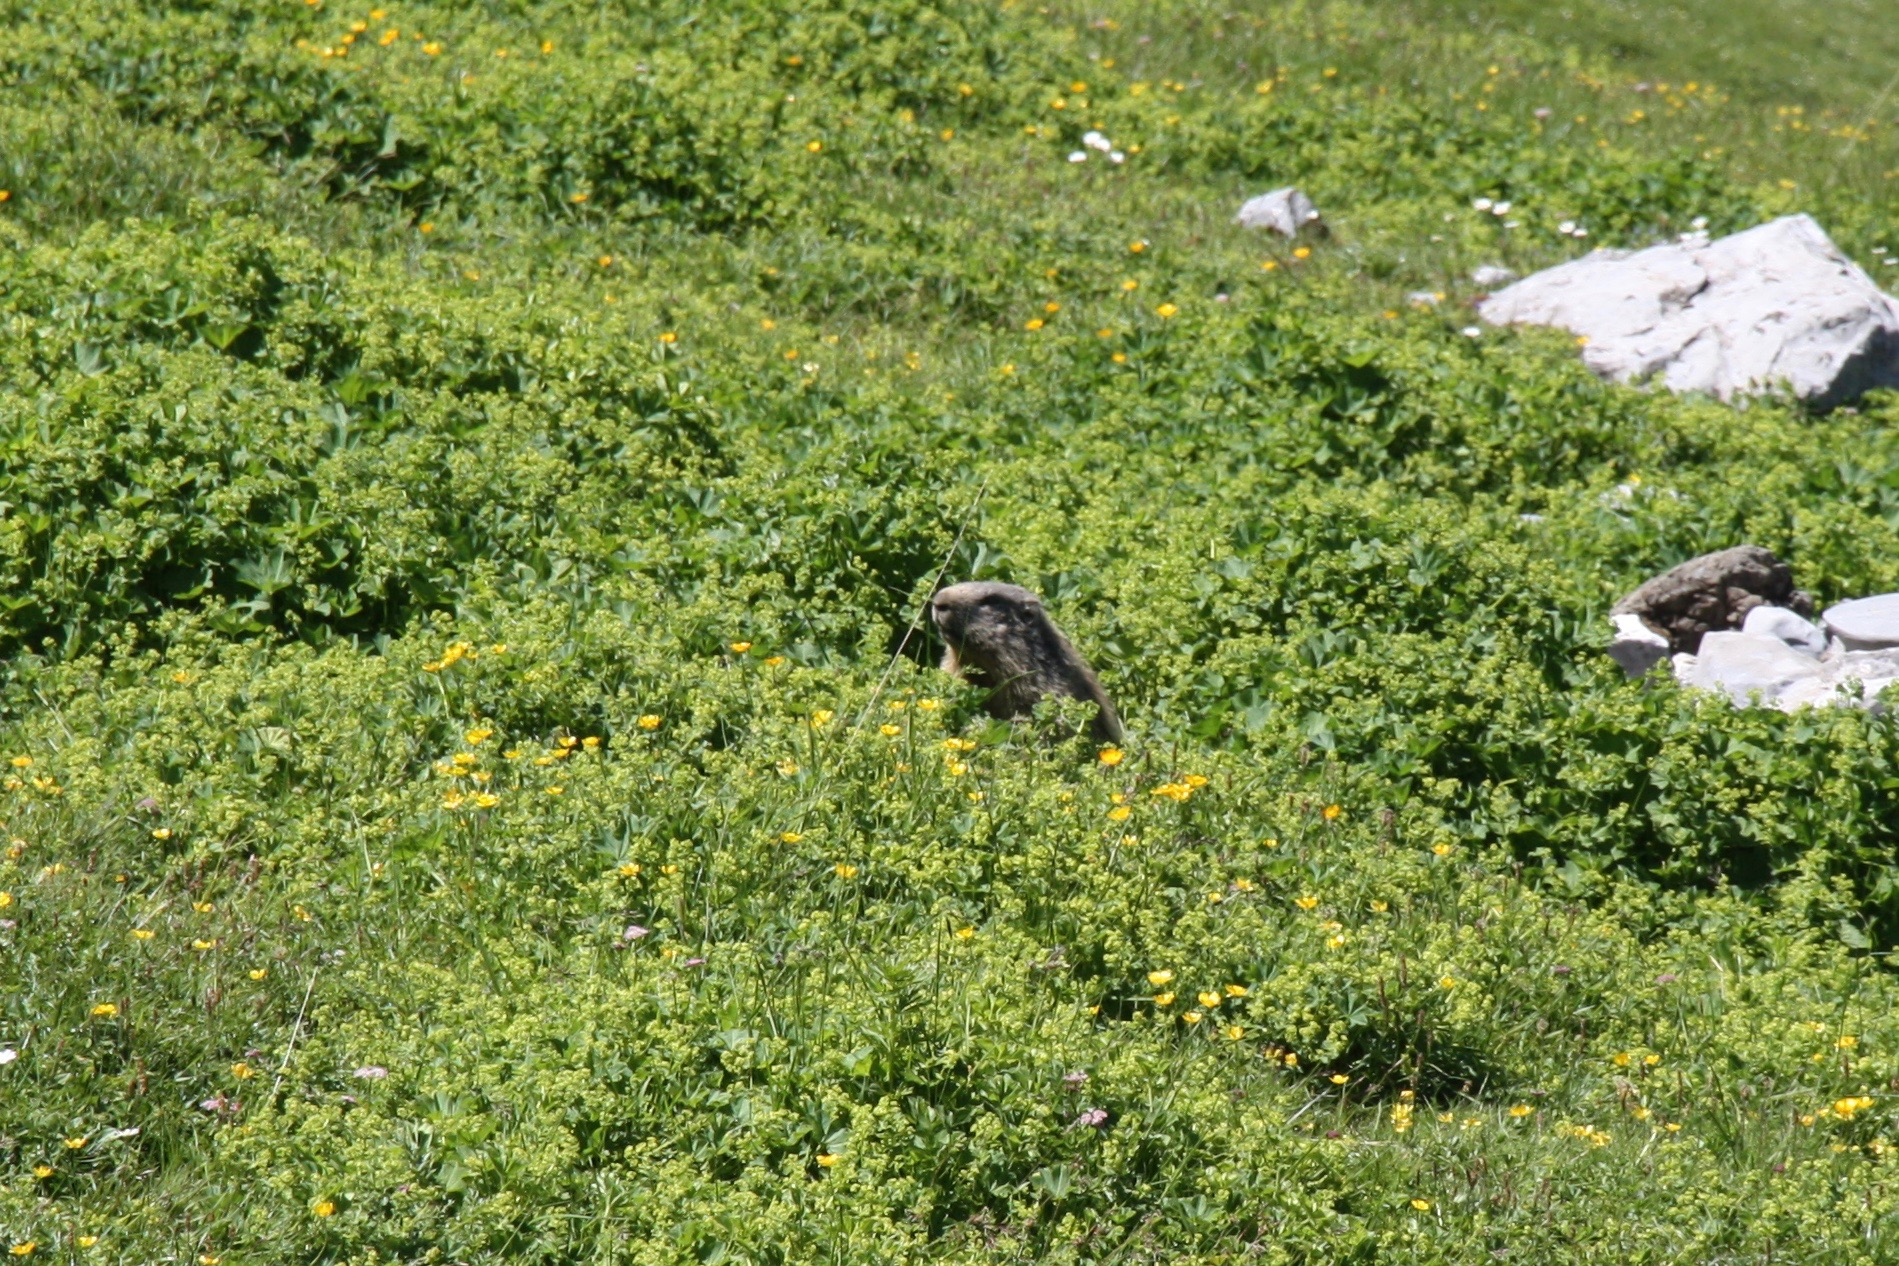 A marmot pokes it head out from among the alpine meadow flowers.